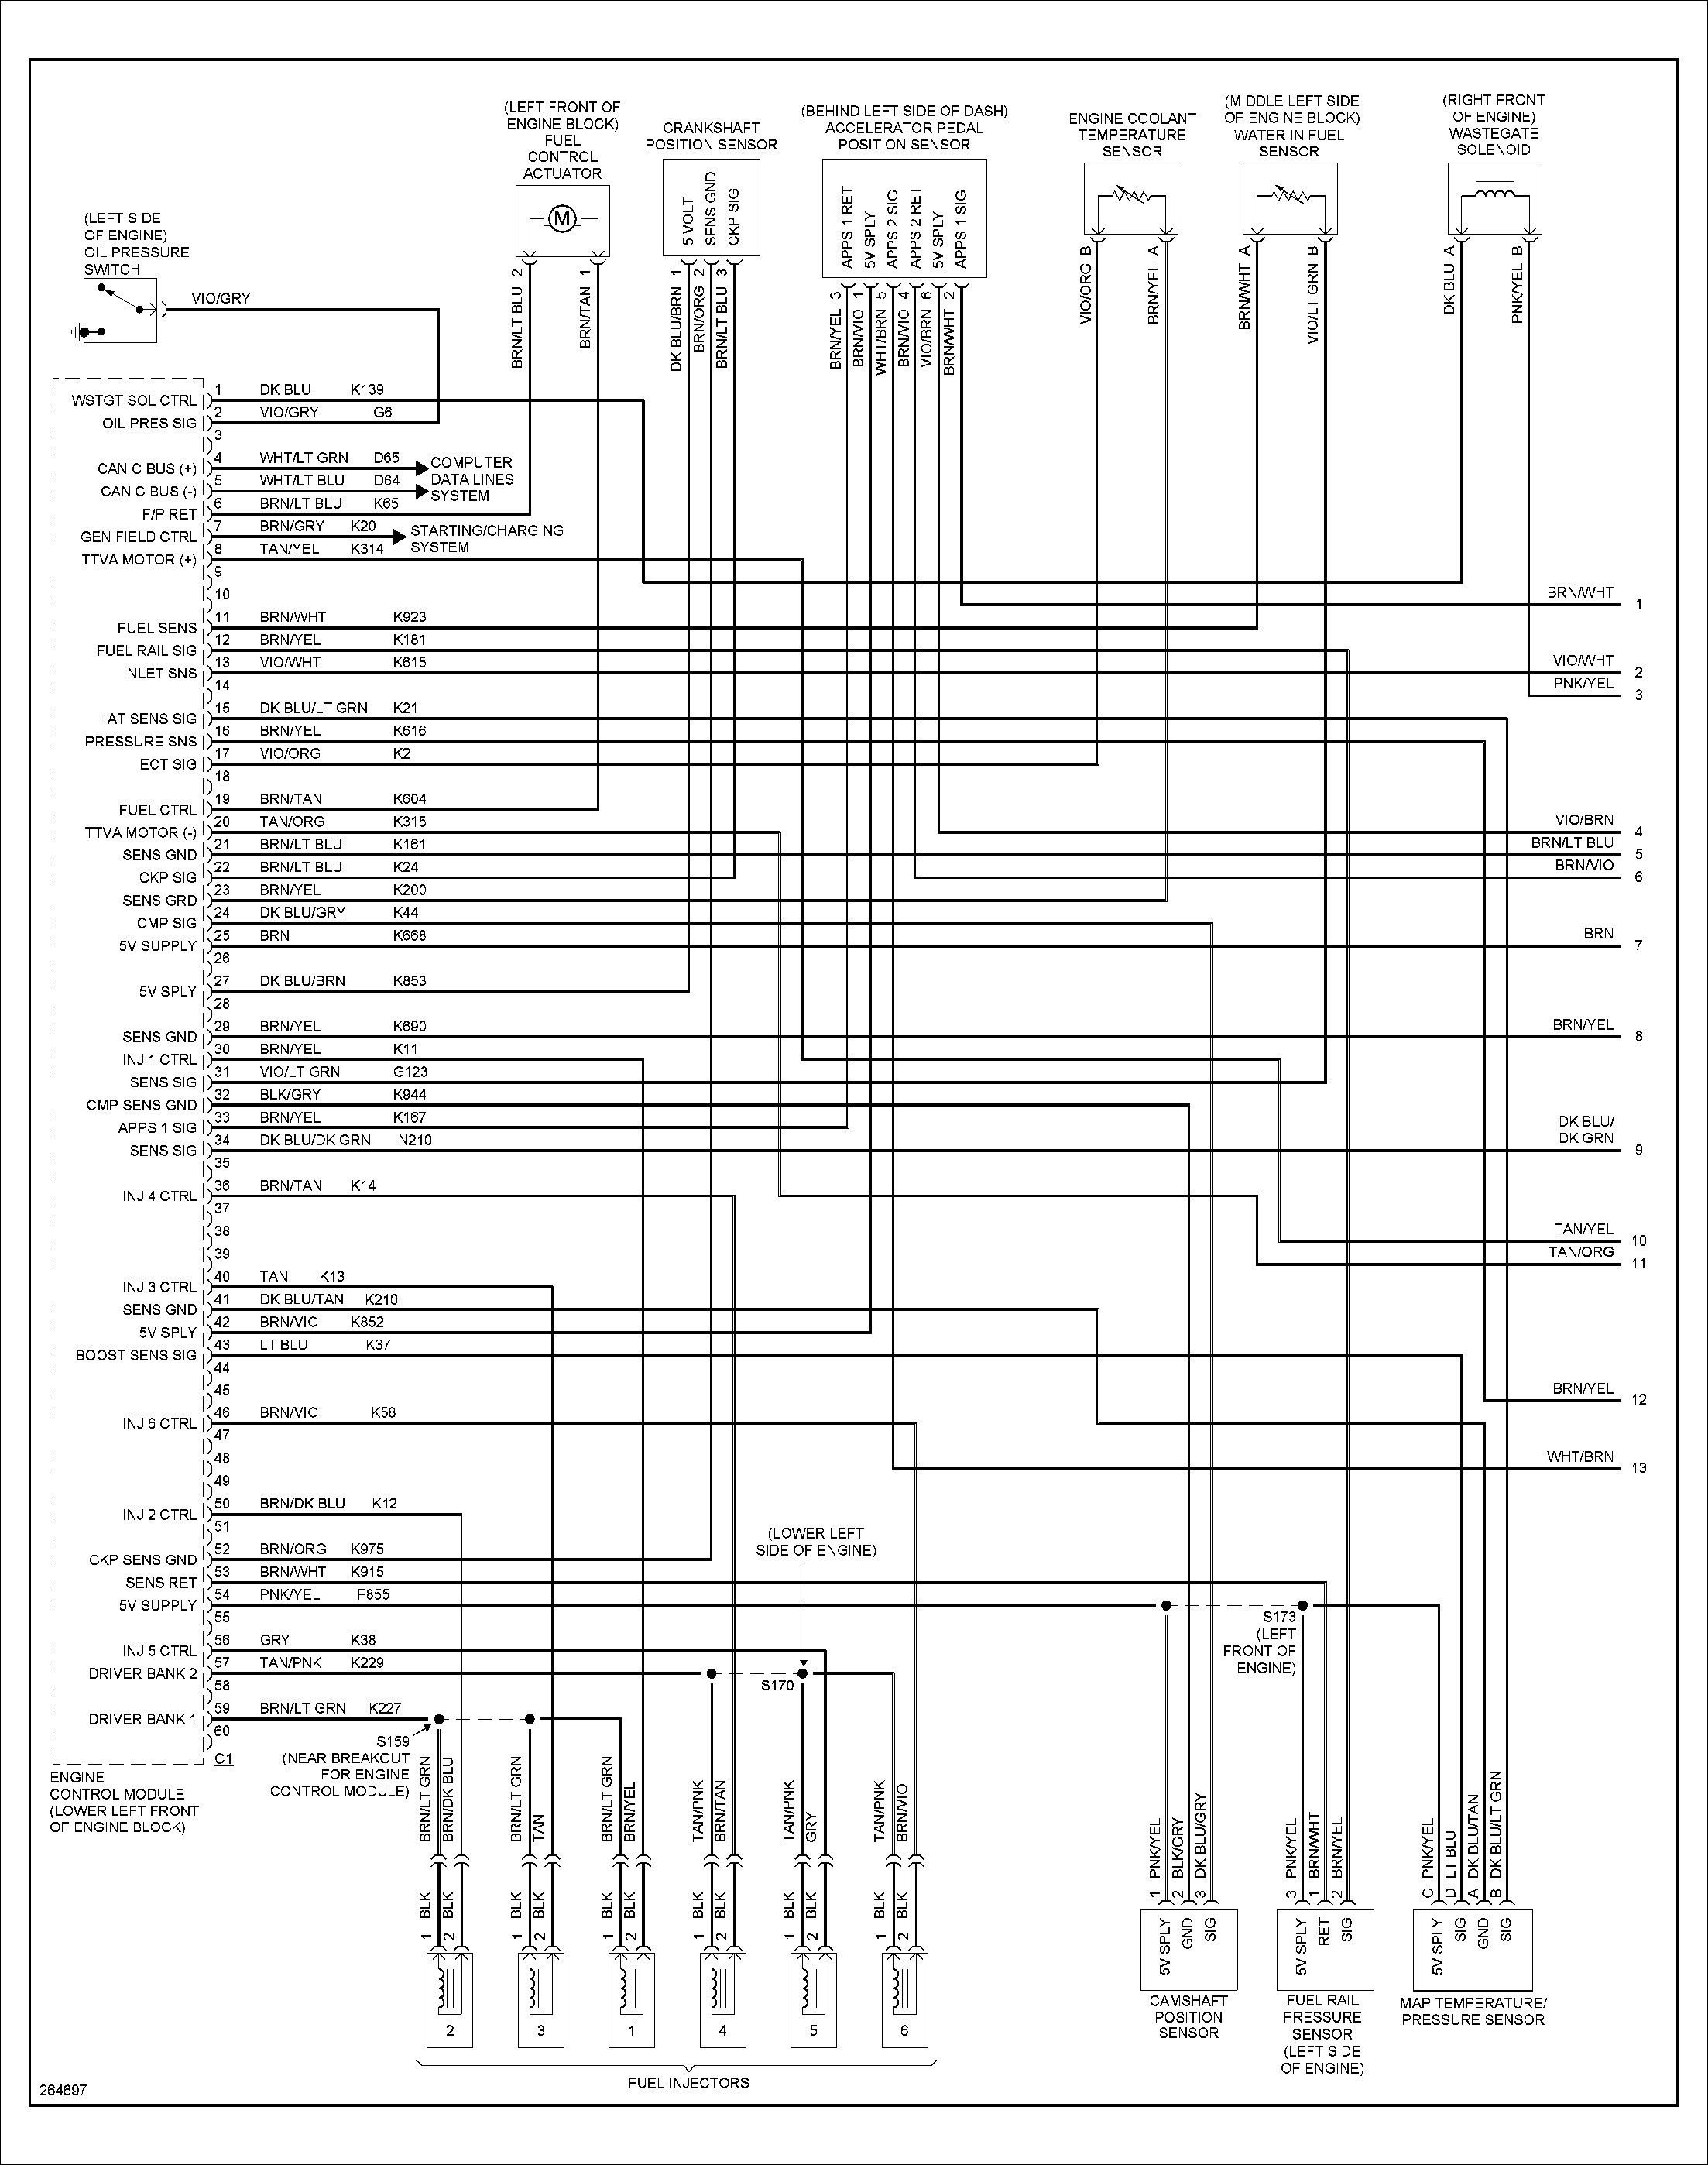 Unique 2007 Dodge Ram 1500 Headlight Wiring Diagram Diagram Diagramsample Diagramtemplate Wiringdiagram Diagr 2004 Dodge Ram 1500 Dodge Ram Dodge Ram 1500